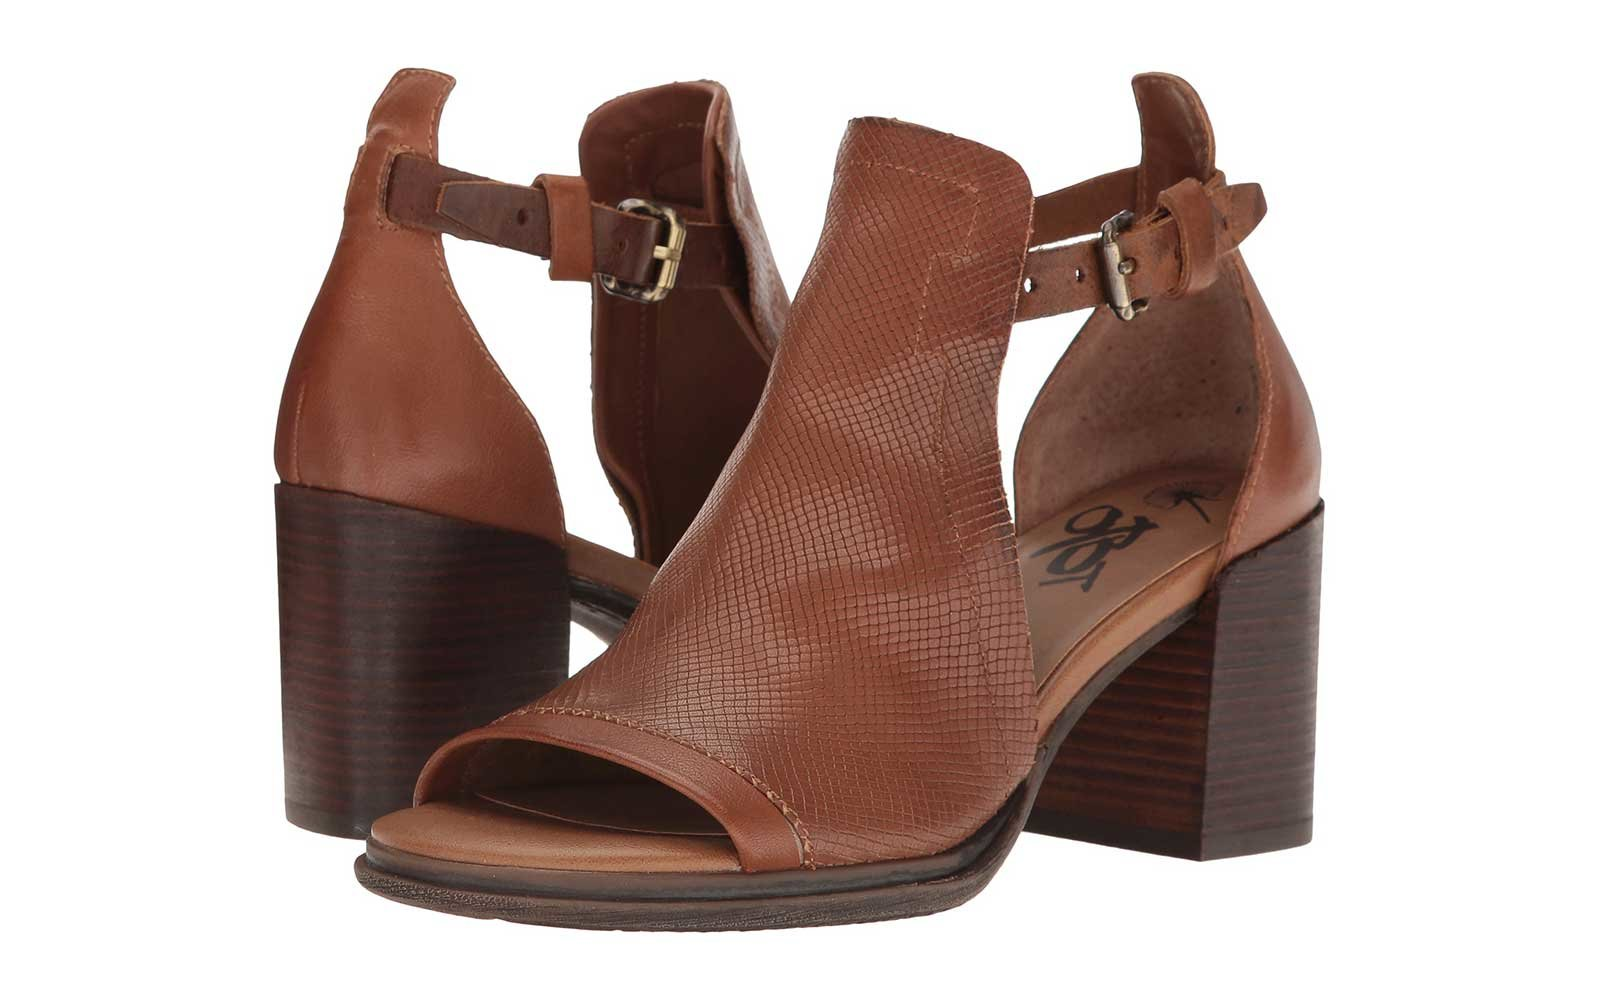 Cutout Sandals for Fall